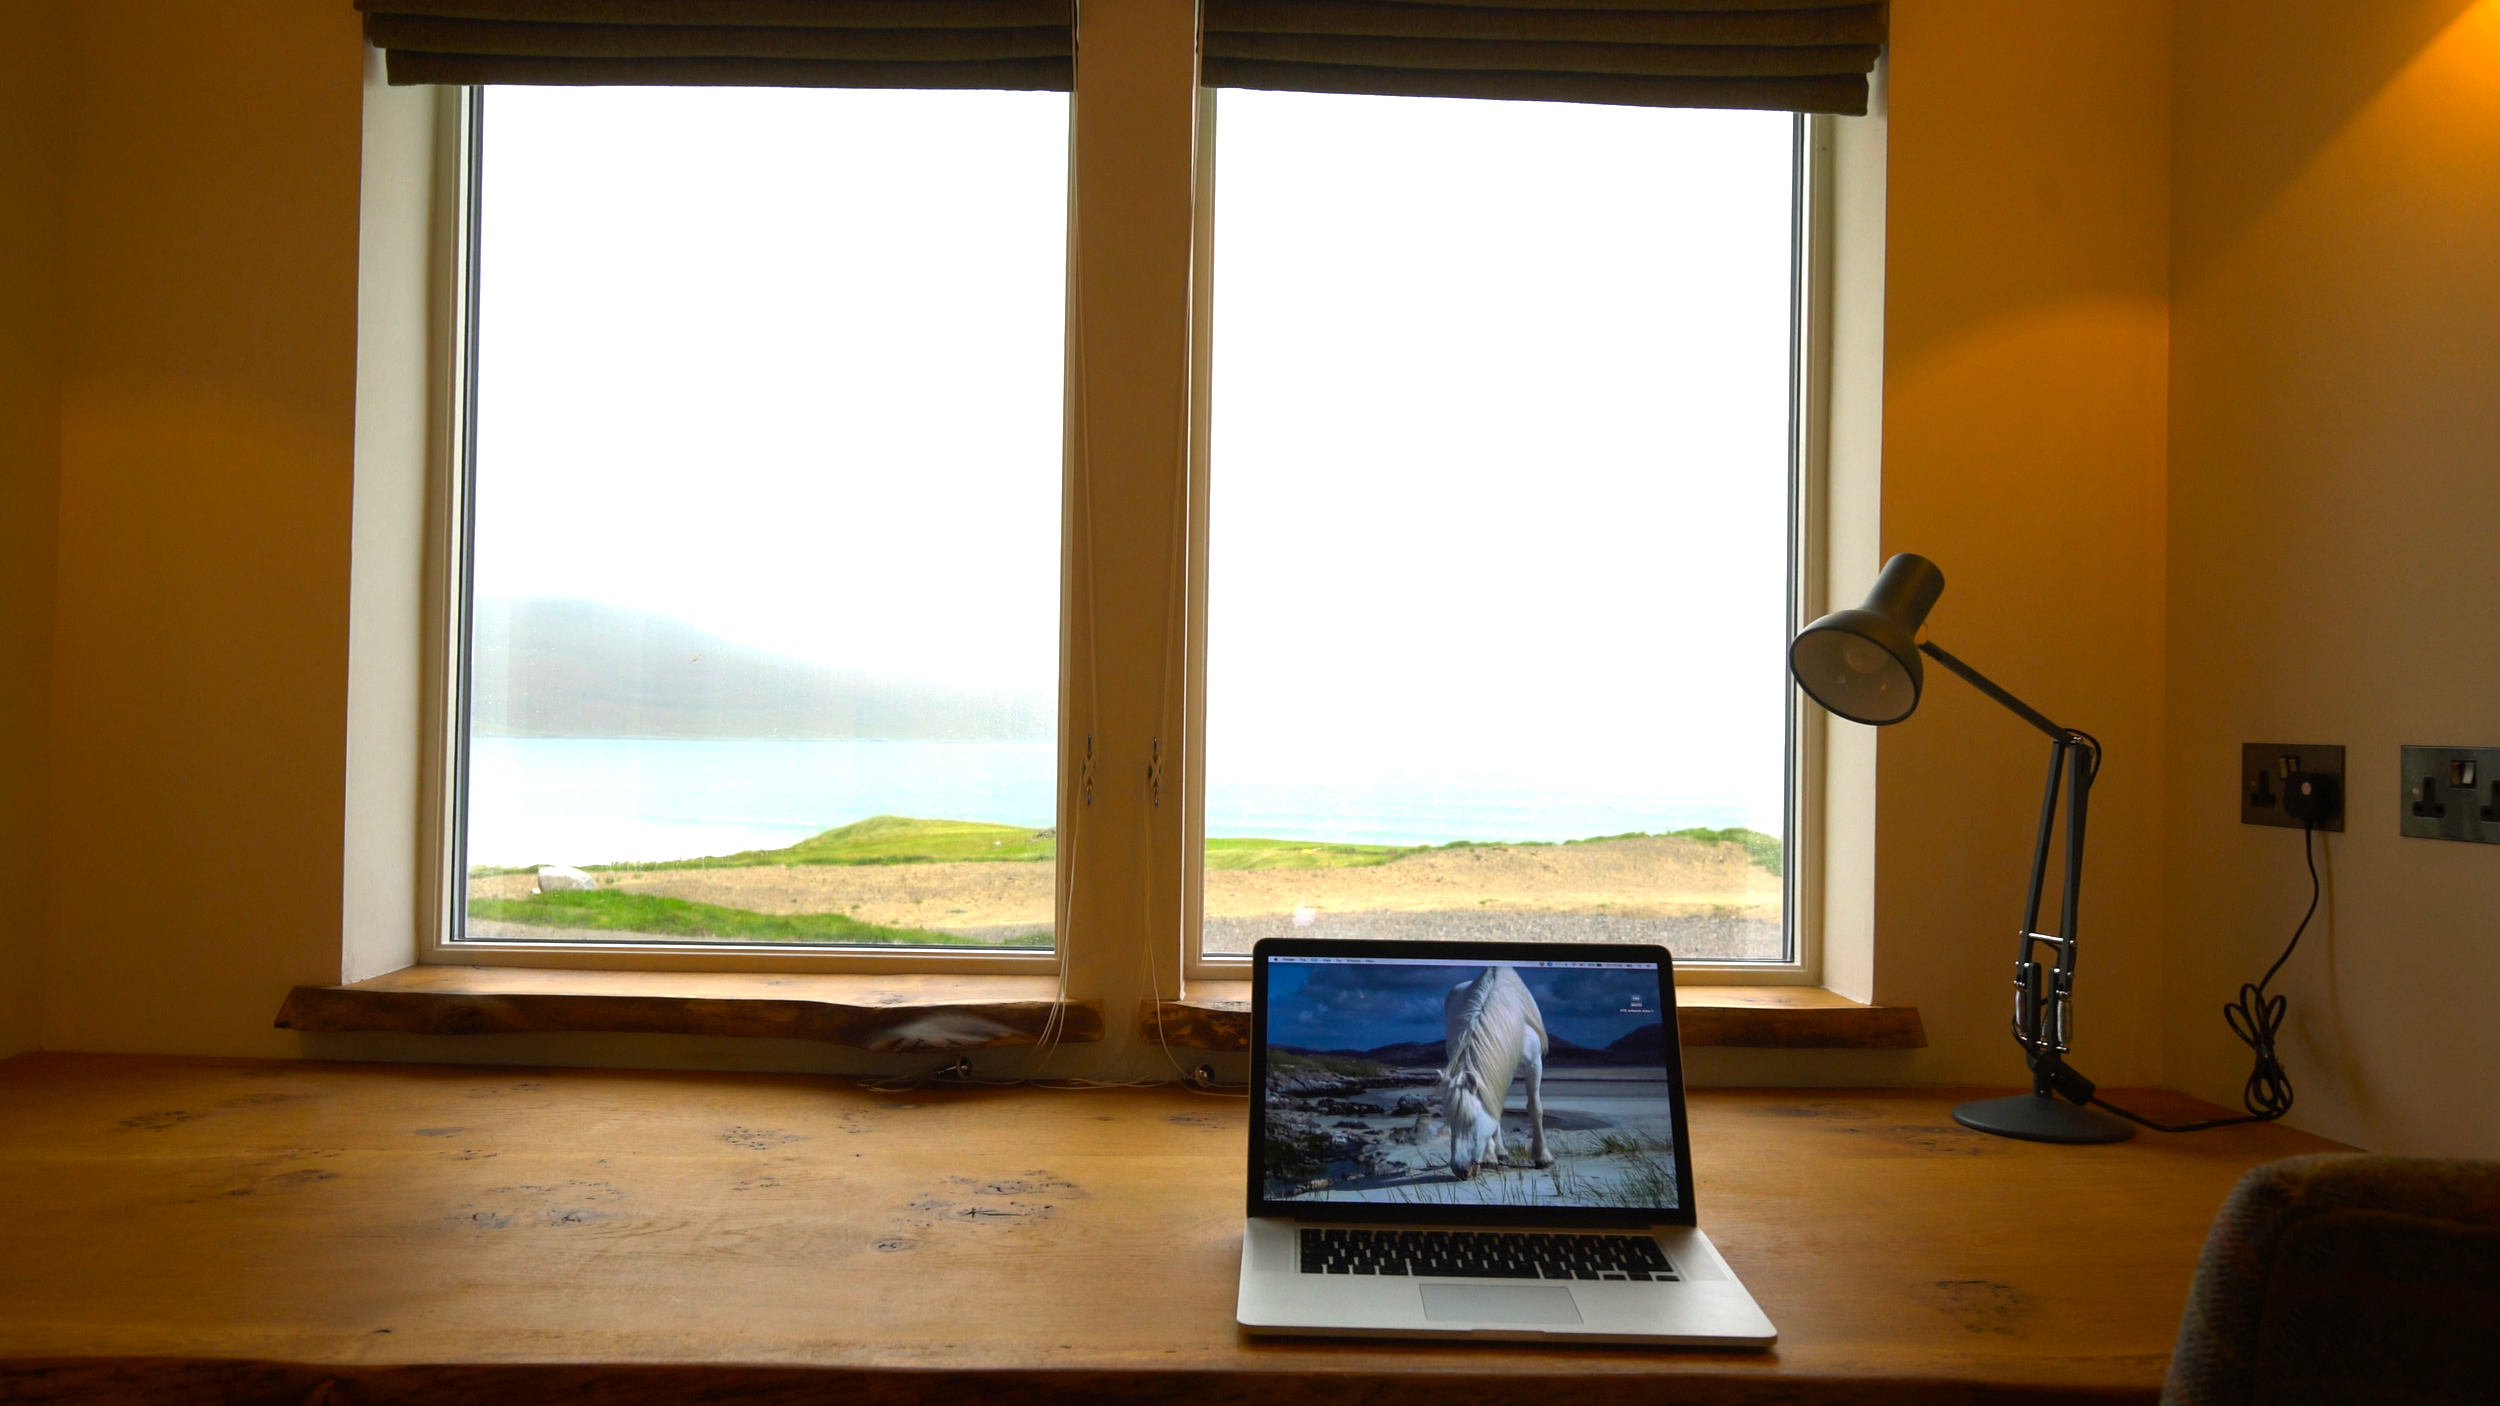 Working here is rather a challenge with the ever-changing view from the study window!